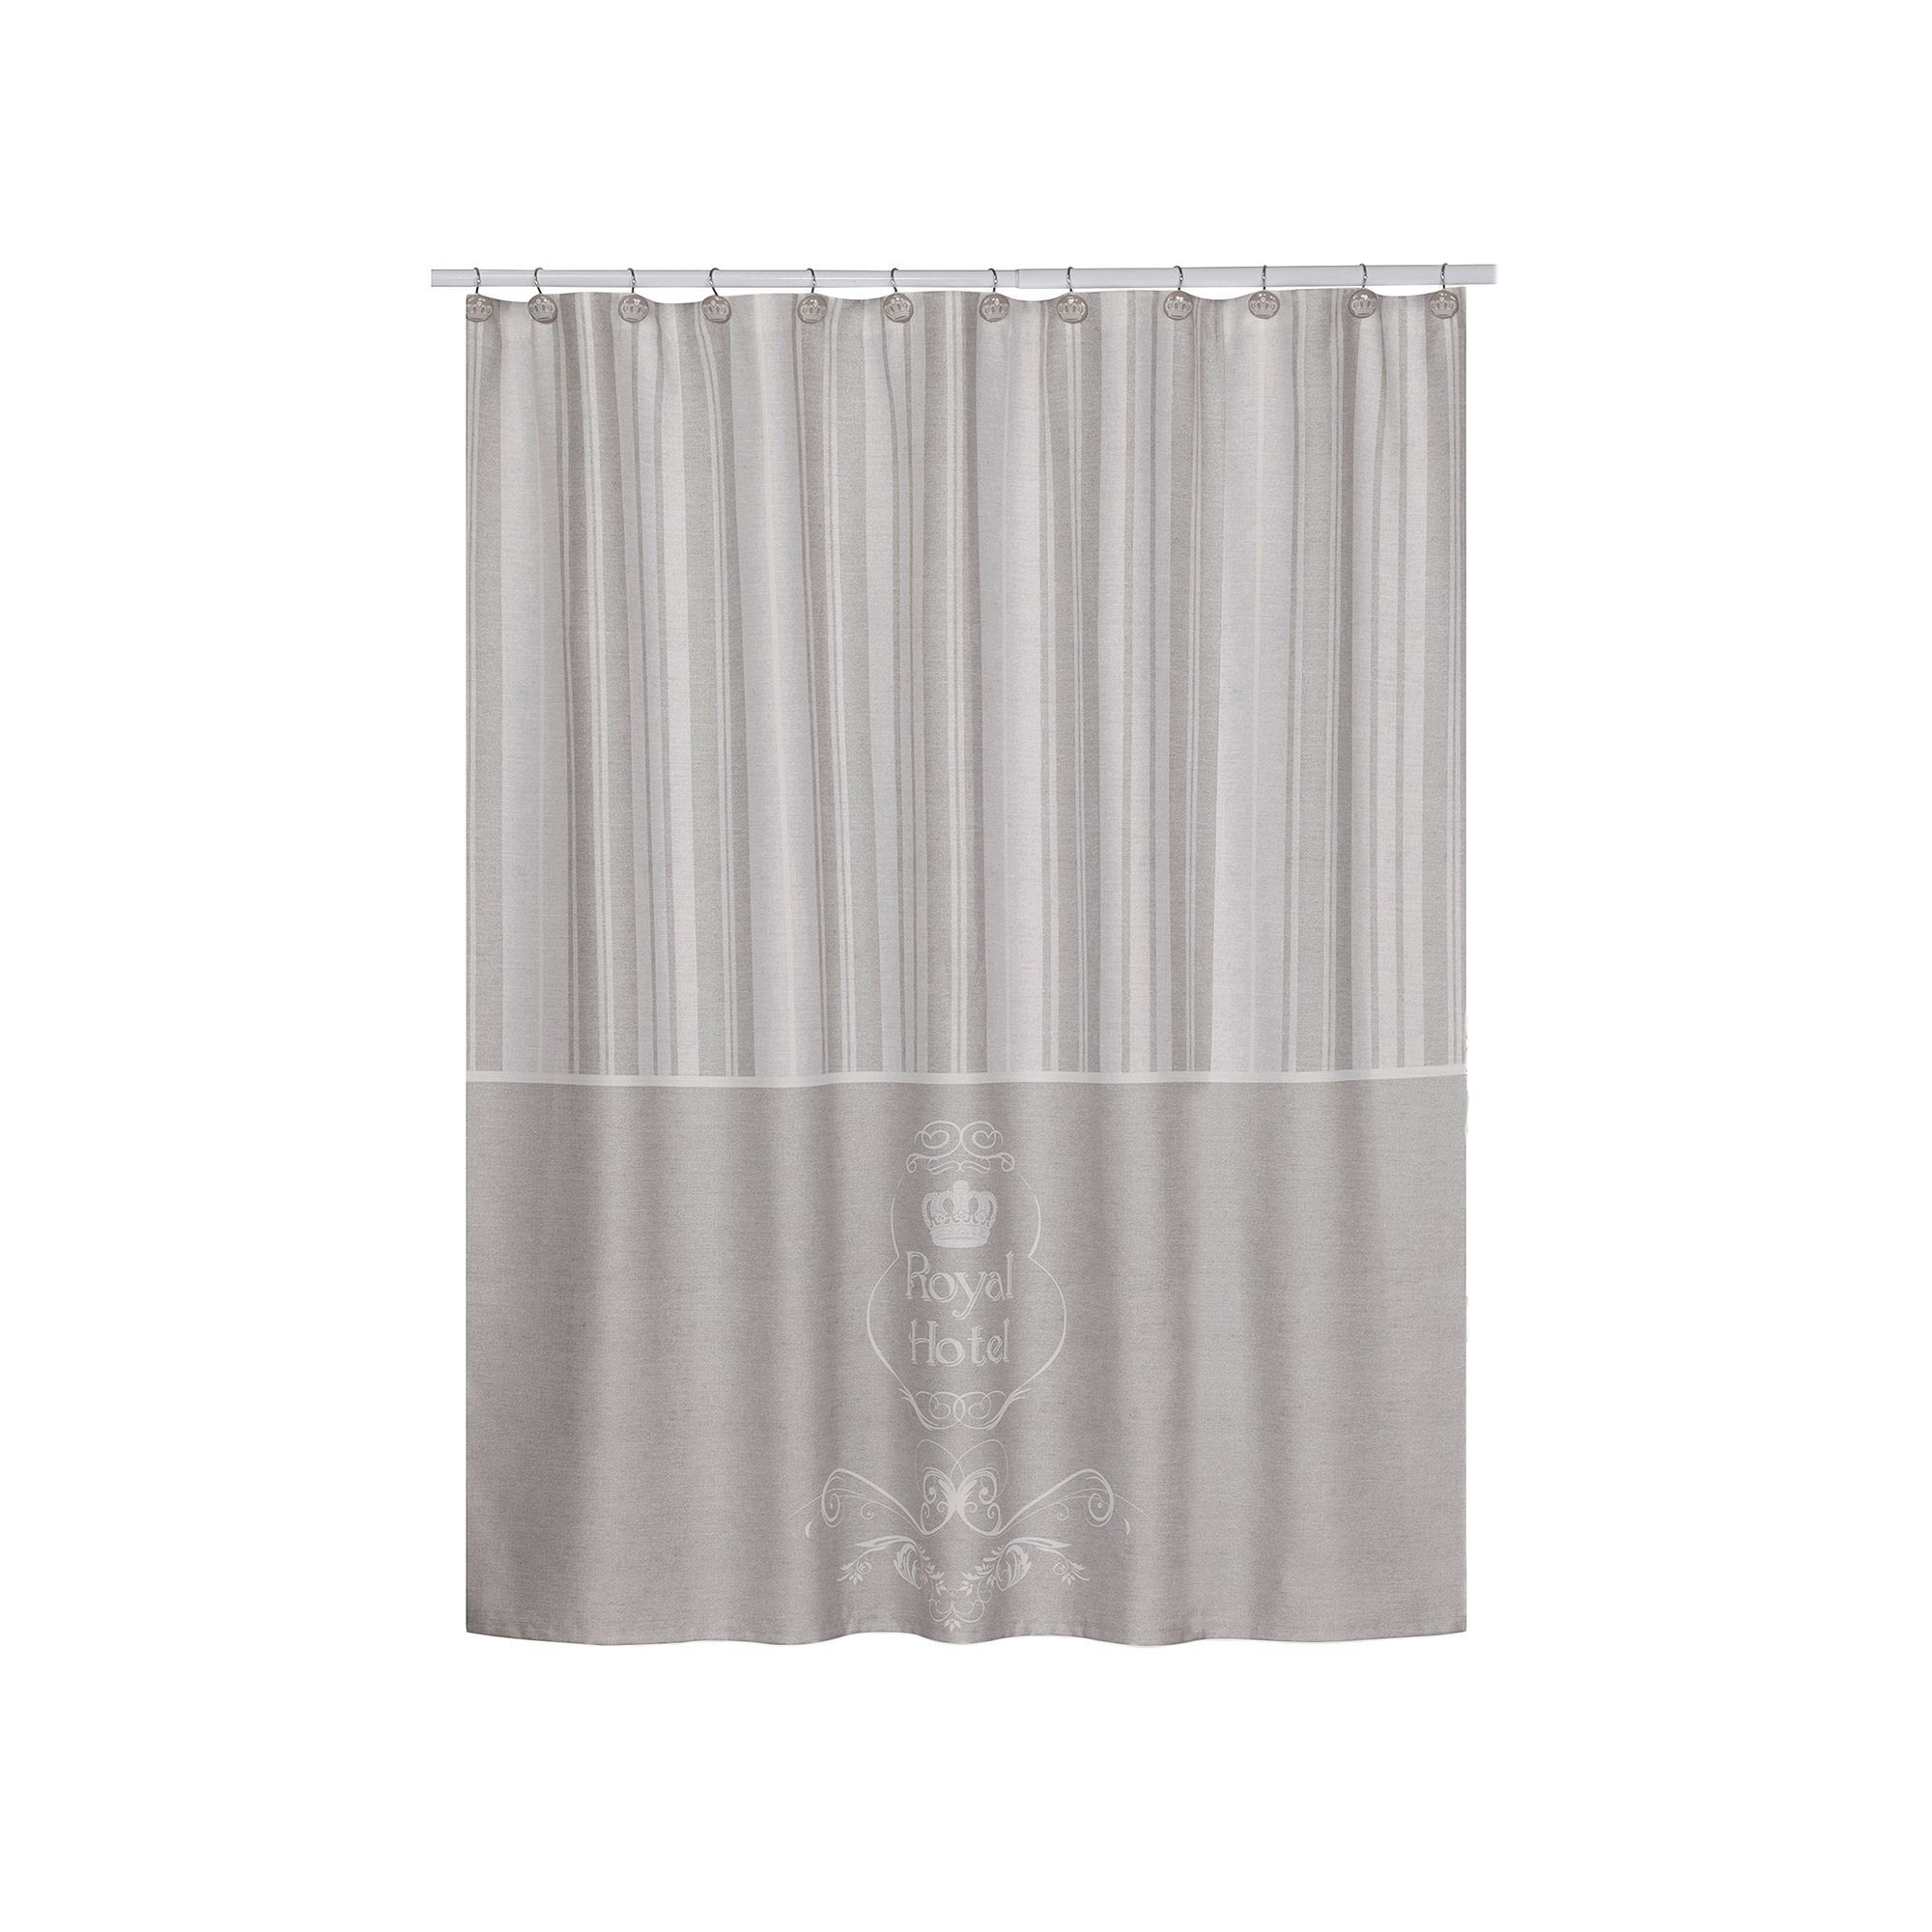 Shower Curtains Like Hotels Have 2018 World S Best Hotels